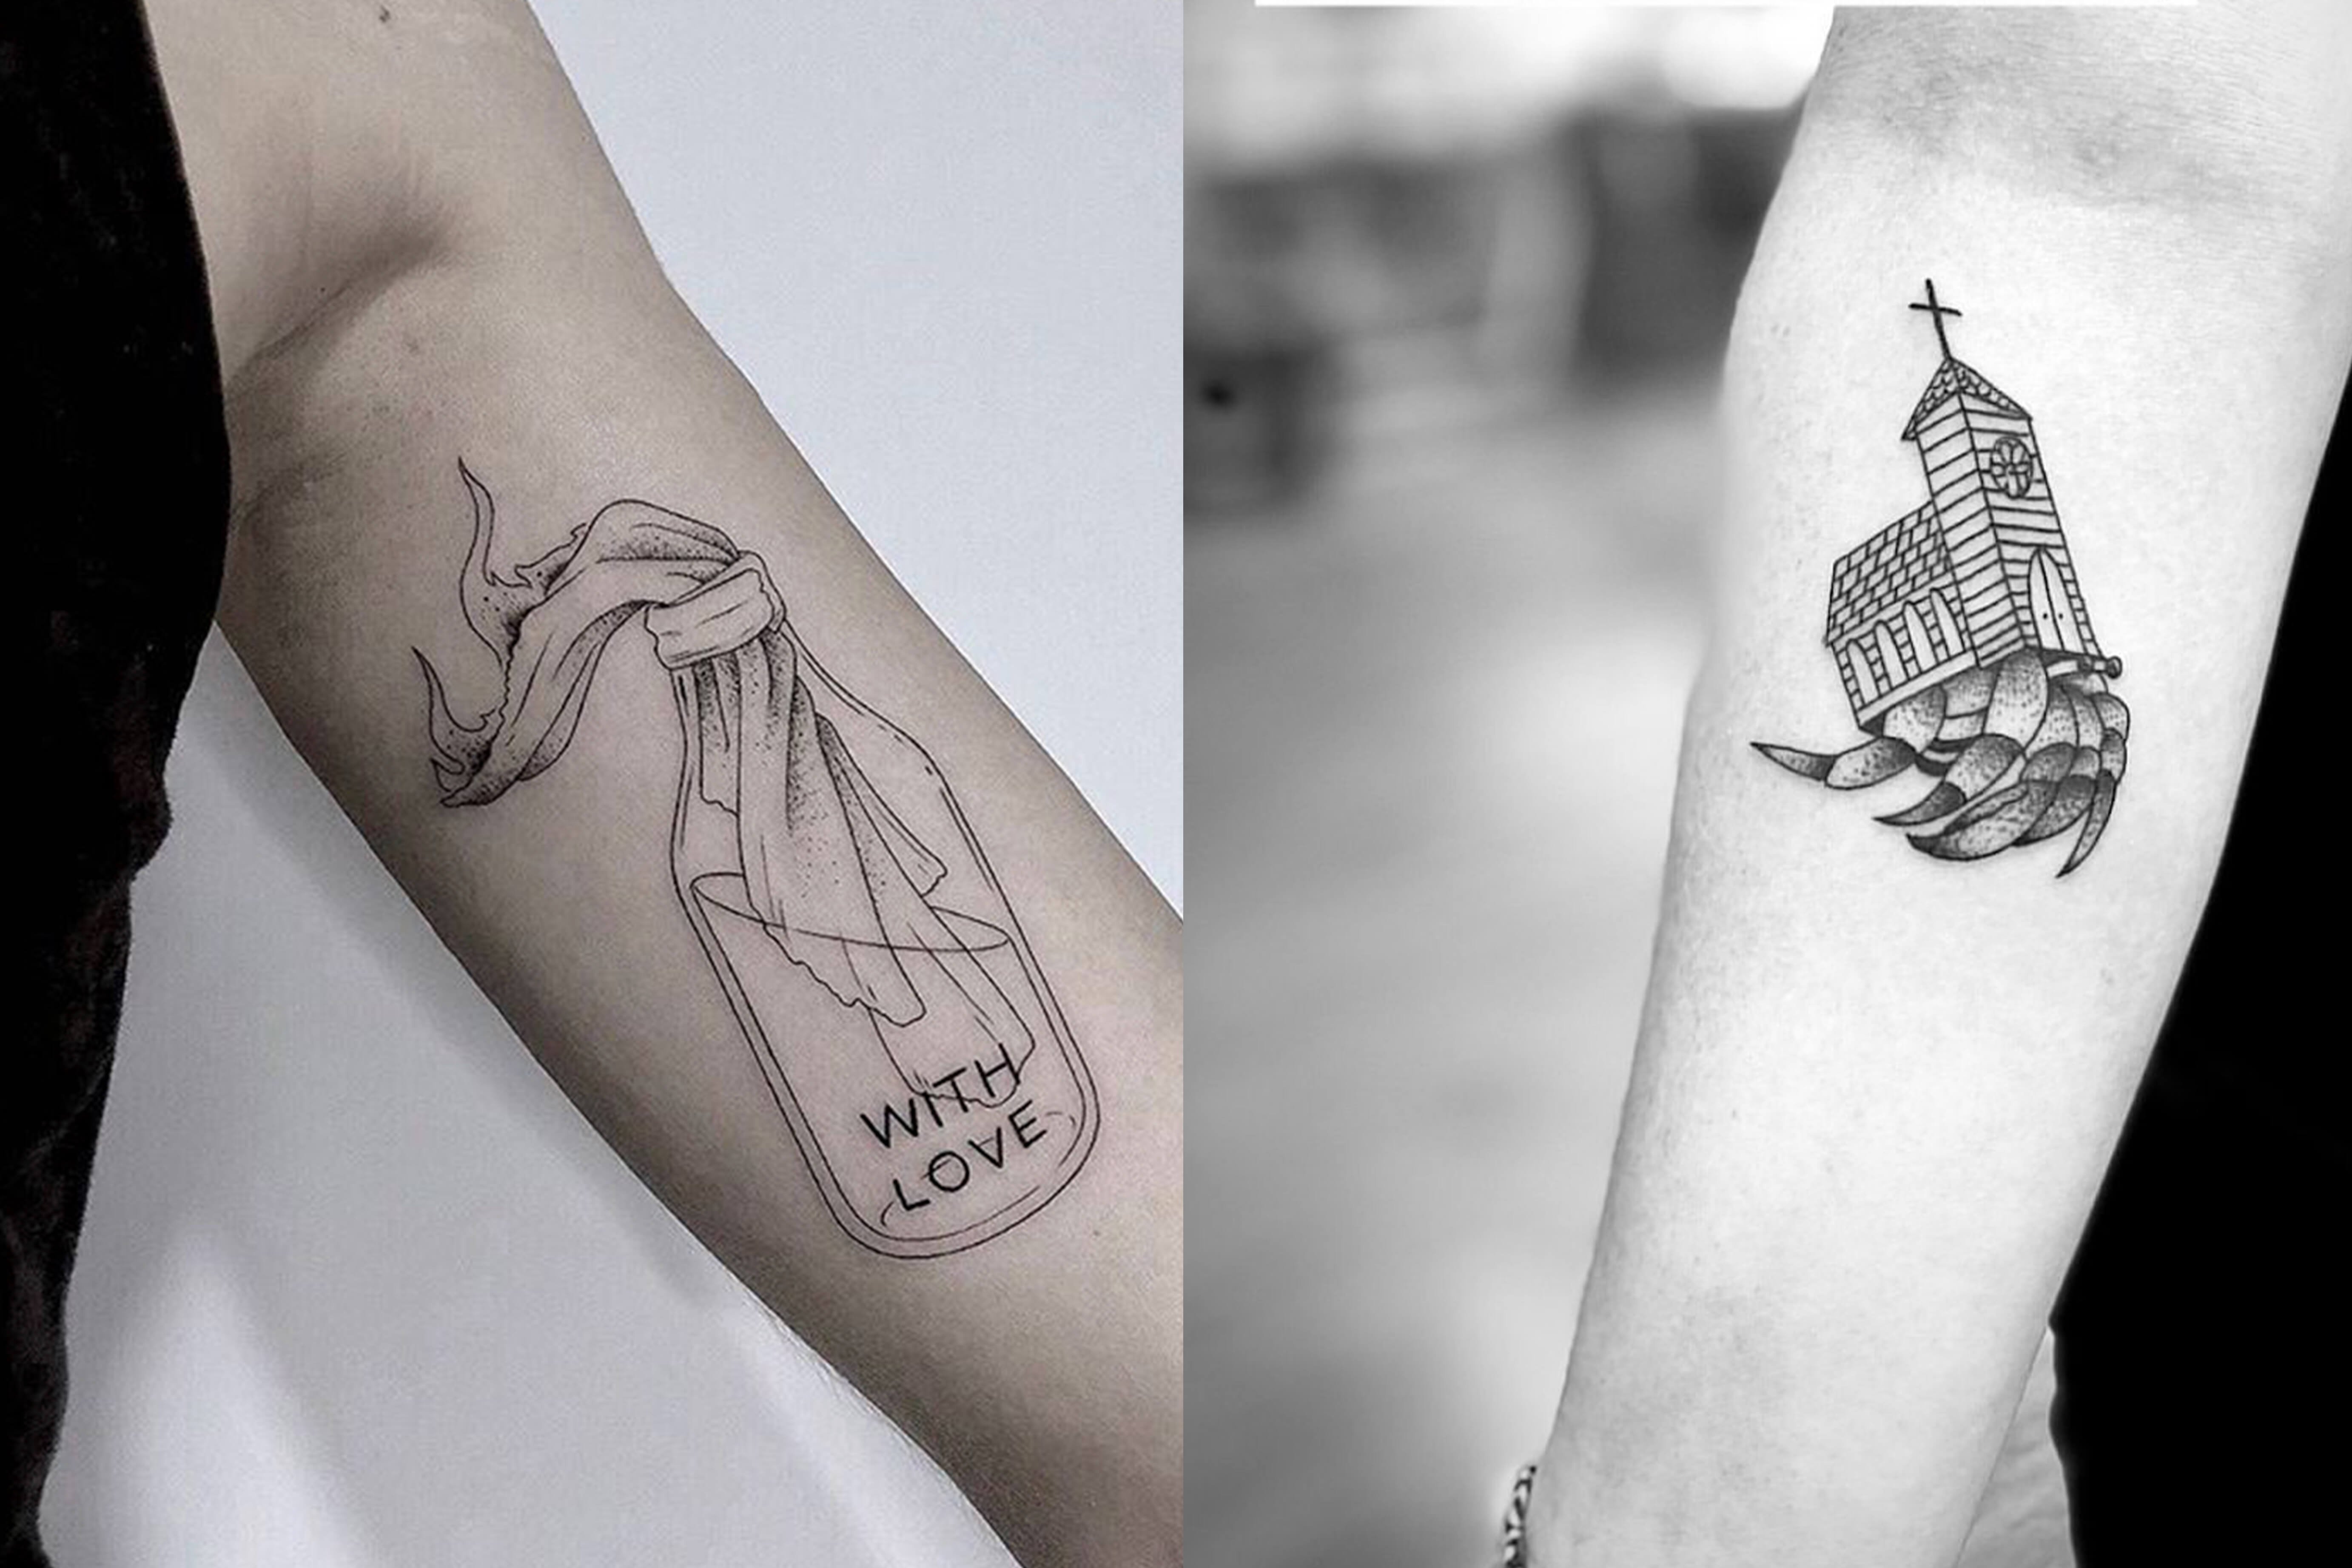 Bottle With Love Tattoo on arm and Hermit Crab tattoo on arm, both designs by Scott Erickson.